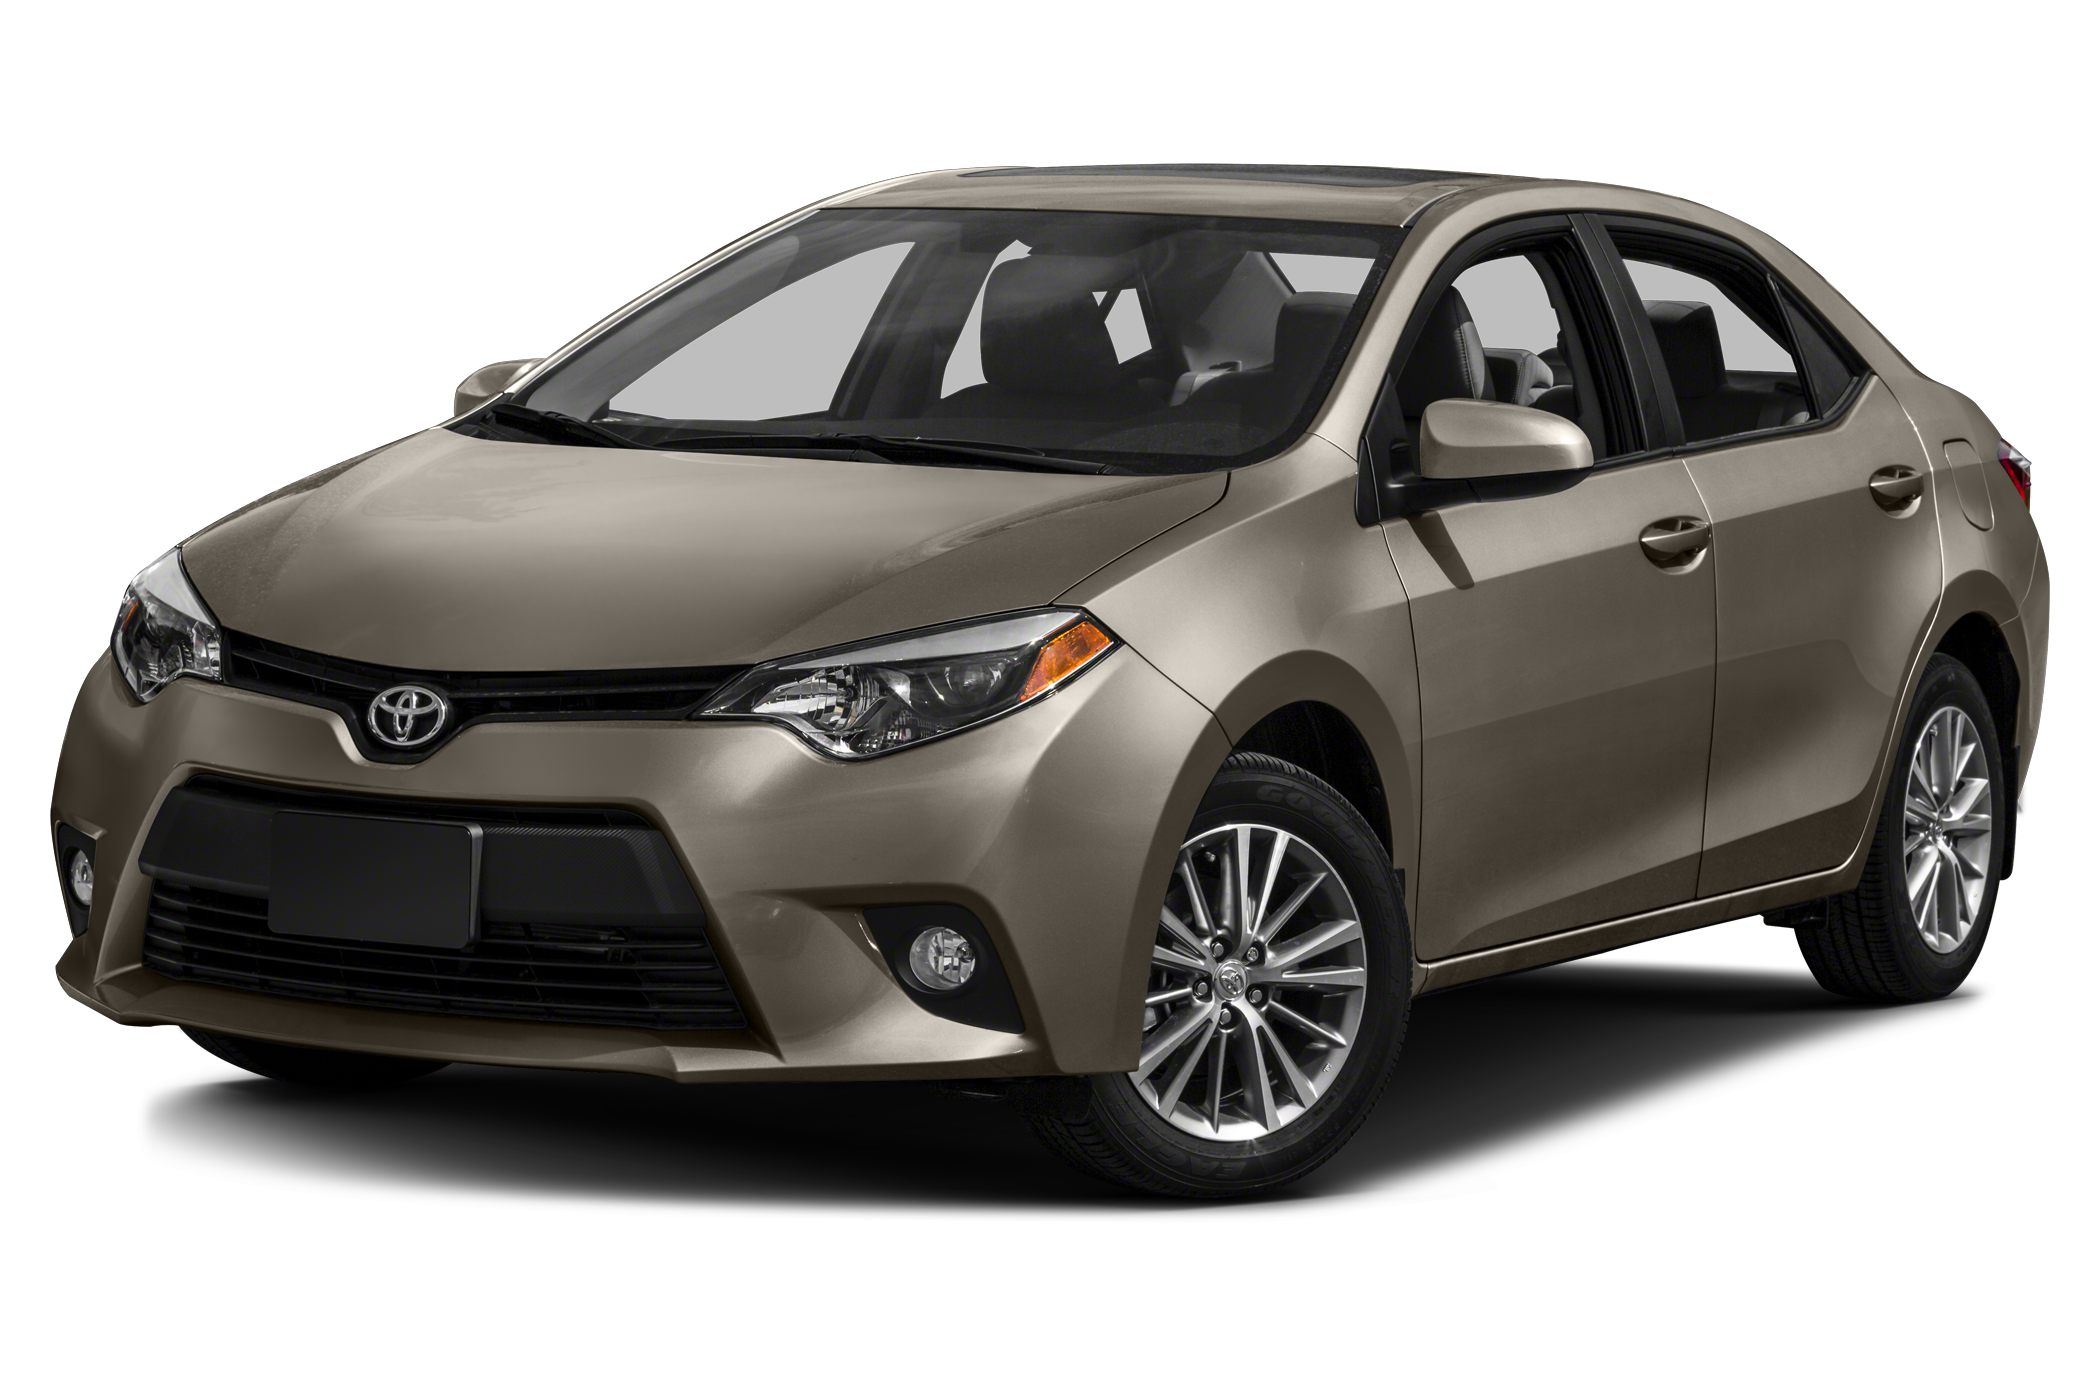 2015 Toyota Corolla LE Sedan for sale in Bethesda for $16,513 with 0 miles